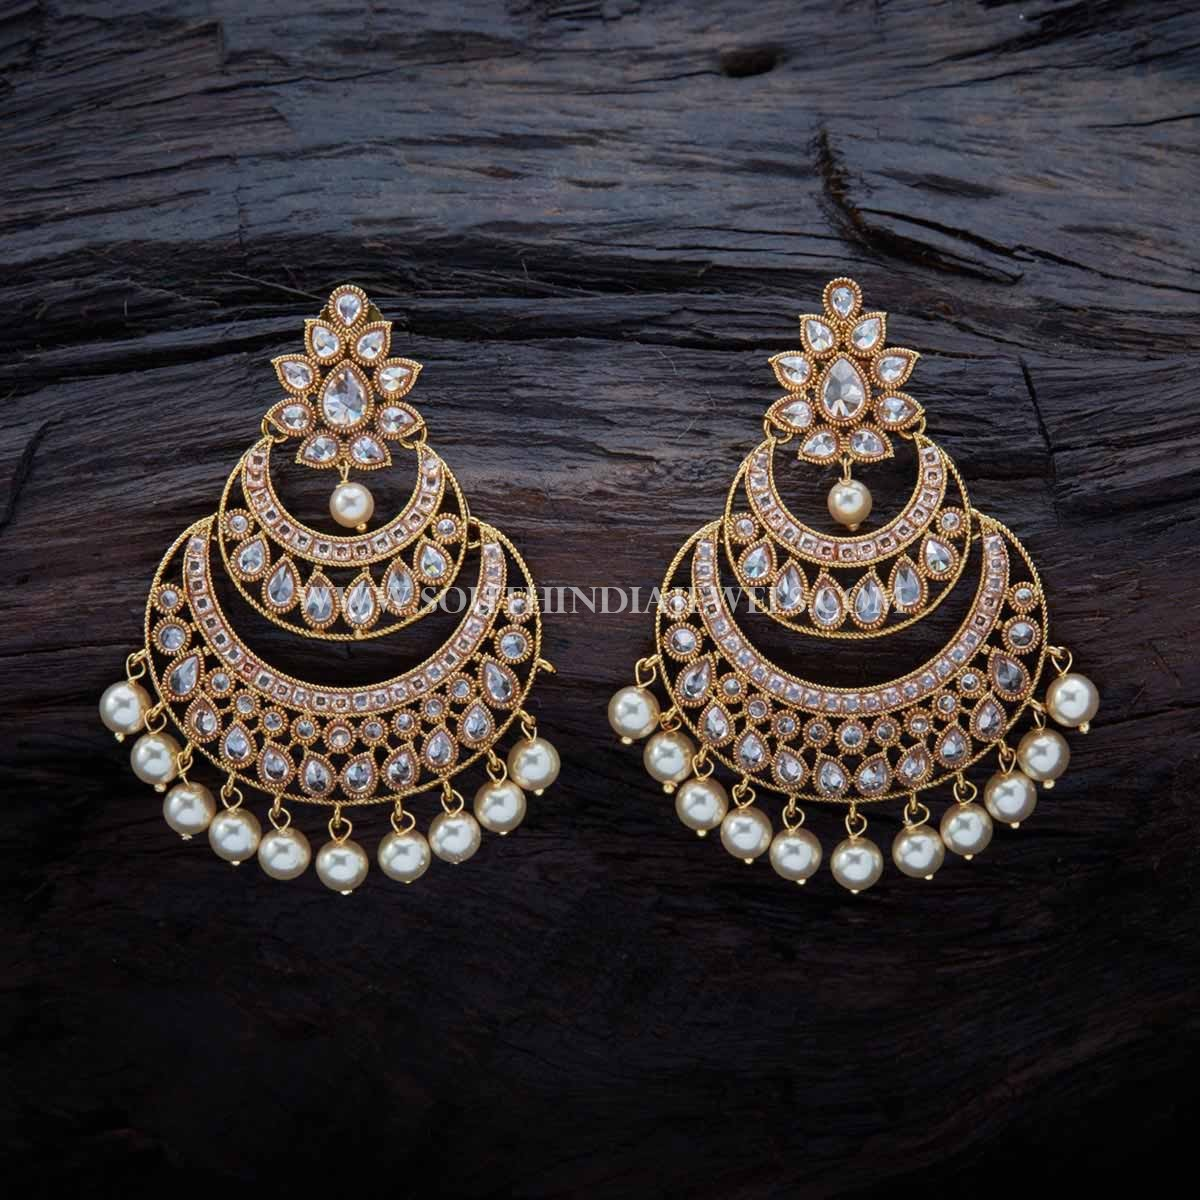 Gold Plated Antique Chandbali Earrings South India Jewels